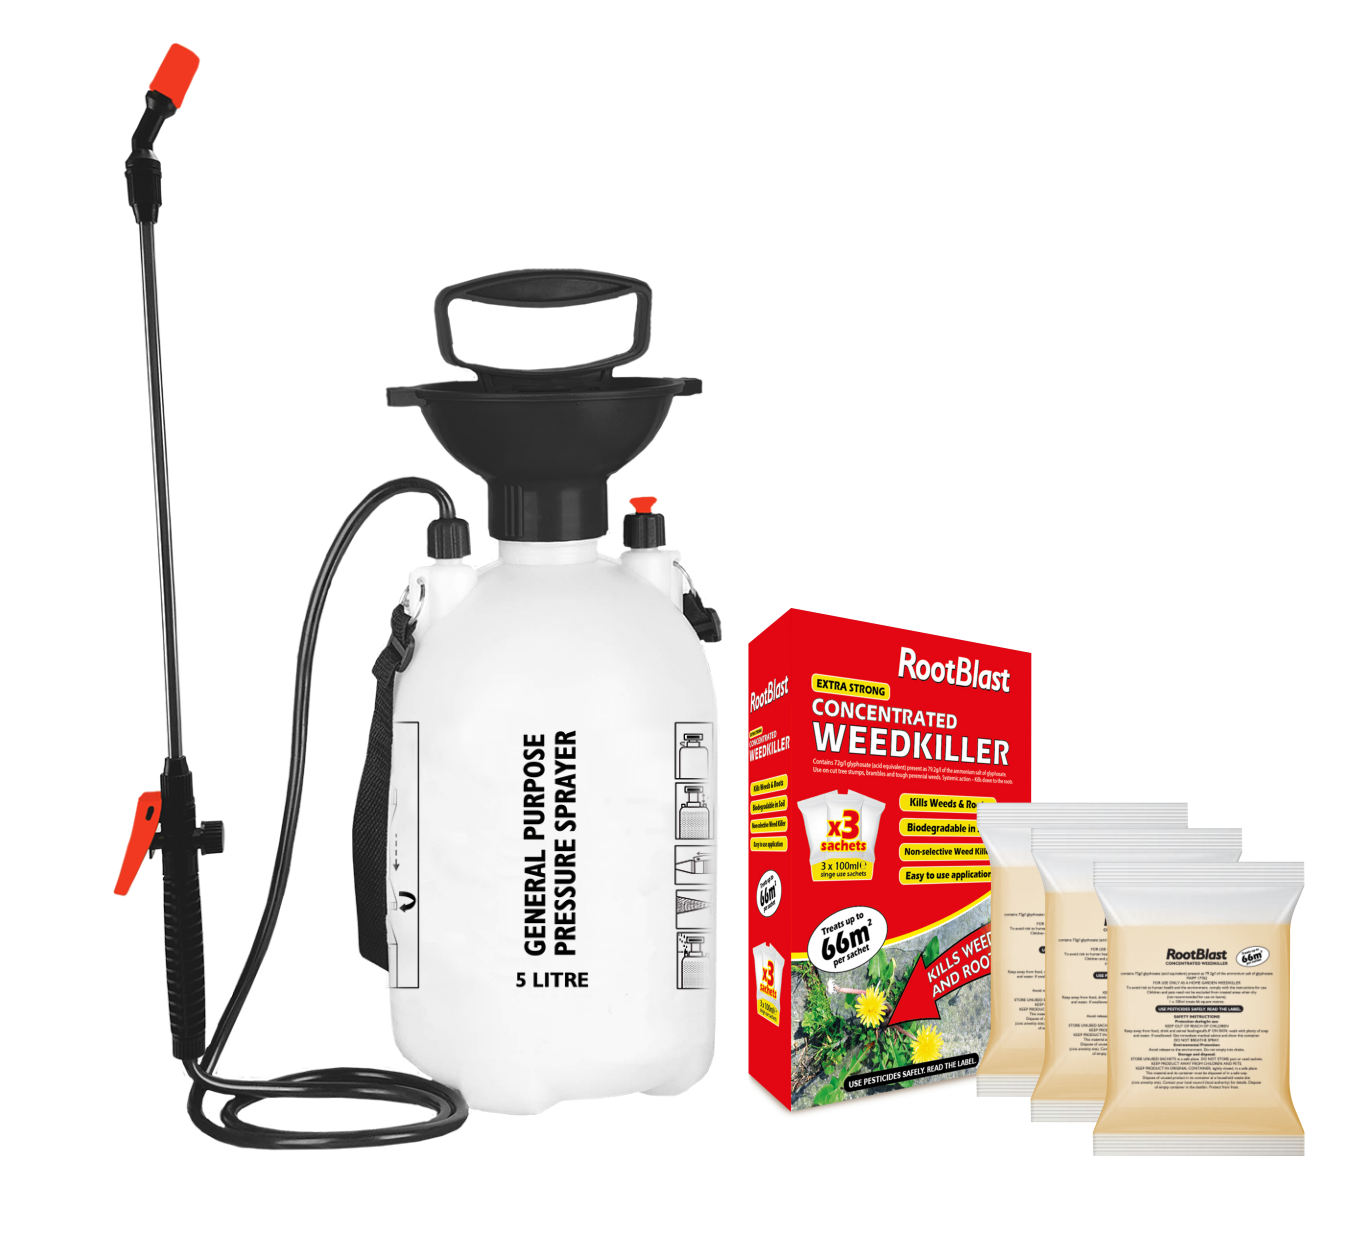 Rootblast Industrial Weedkiller 3 x 100ml + 5L Sprayer Systemic with Glyphosate